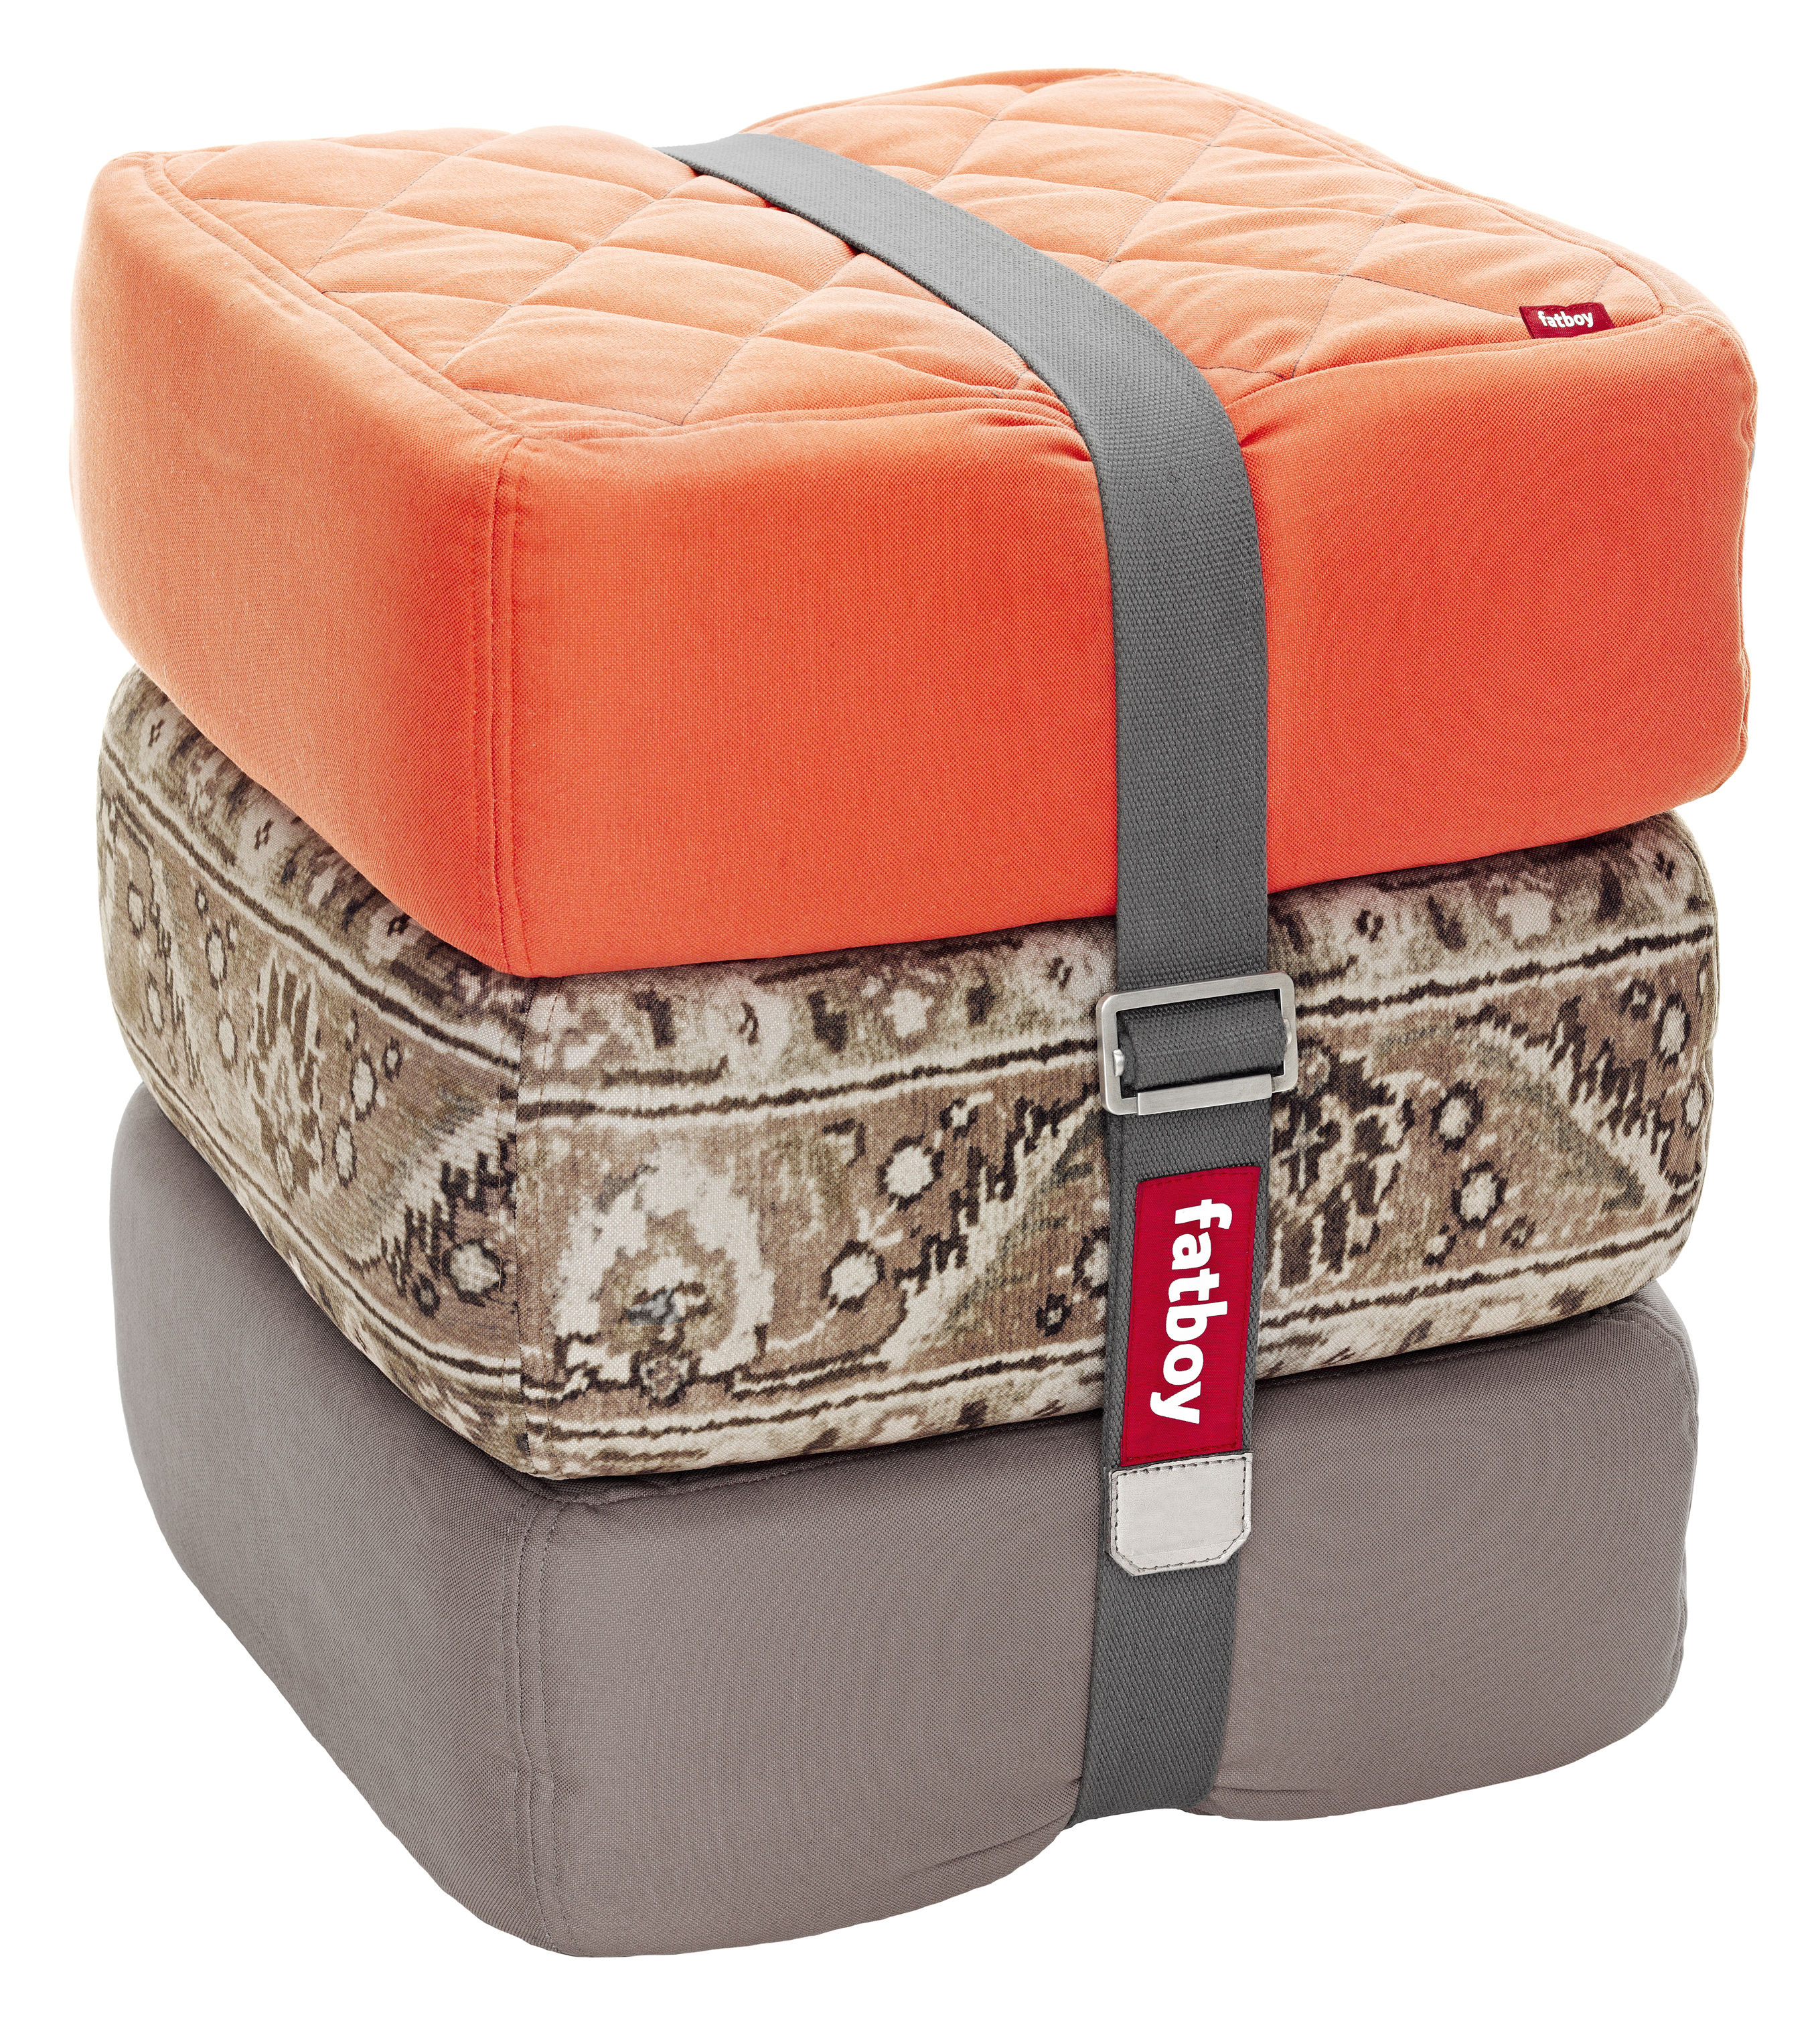 pouf baboesjka set 3 coussins de sol orange taupe persan taupe fatboy. Black Bedroom Furniture Sets. Home Design Ideas